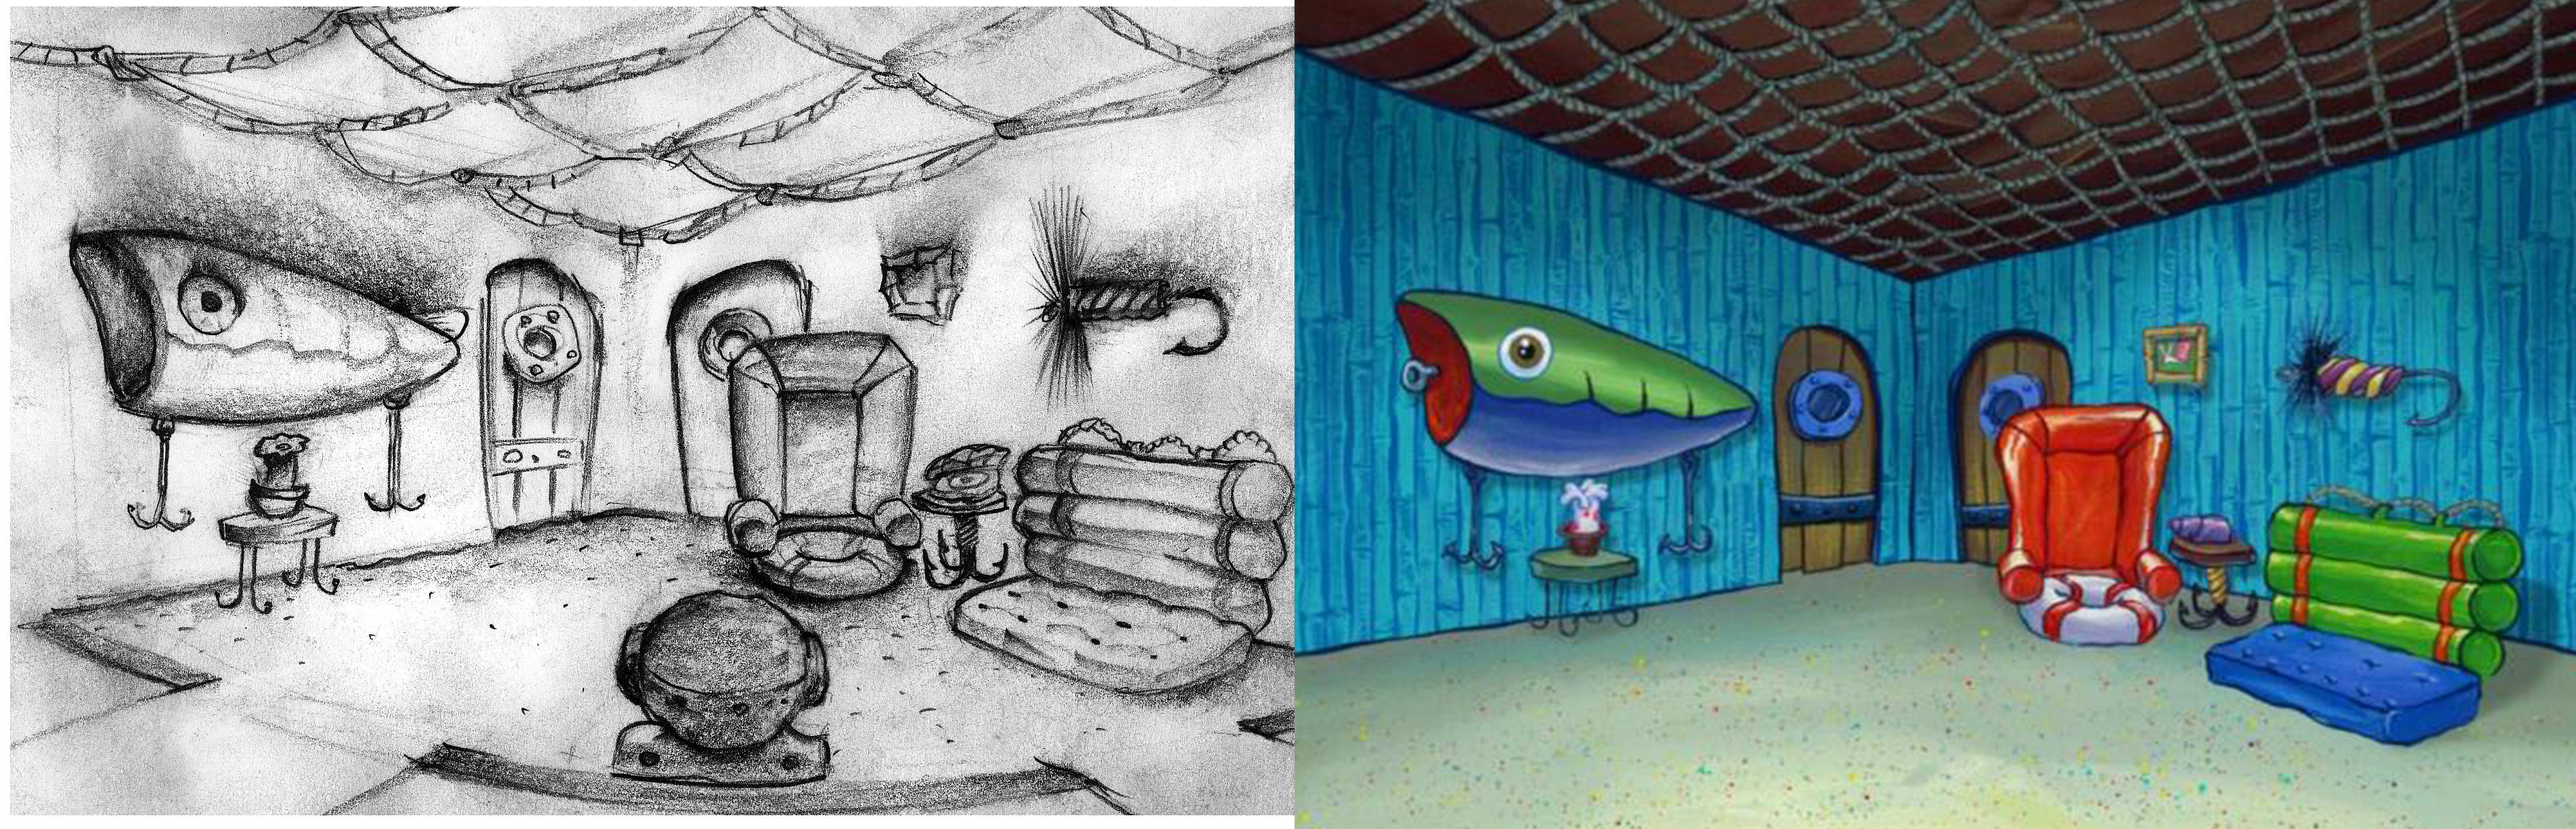 Design for Spongebob's living room